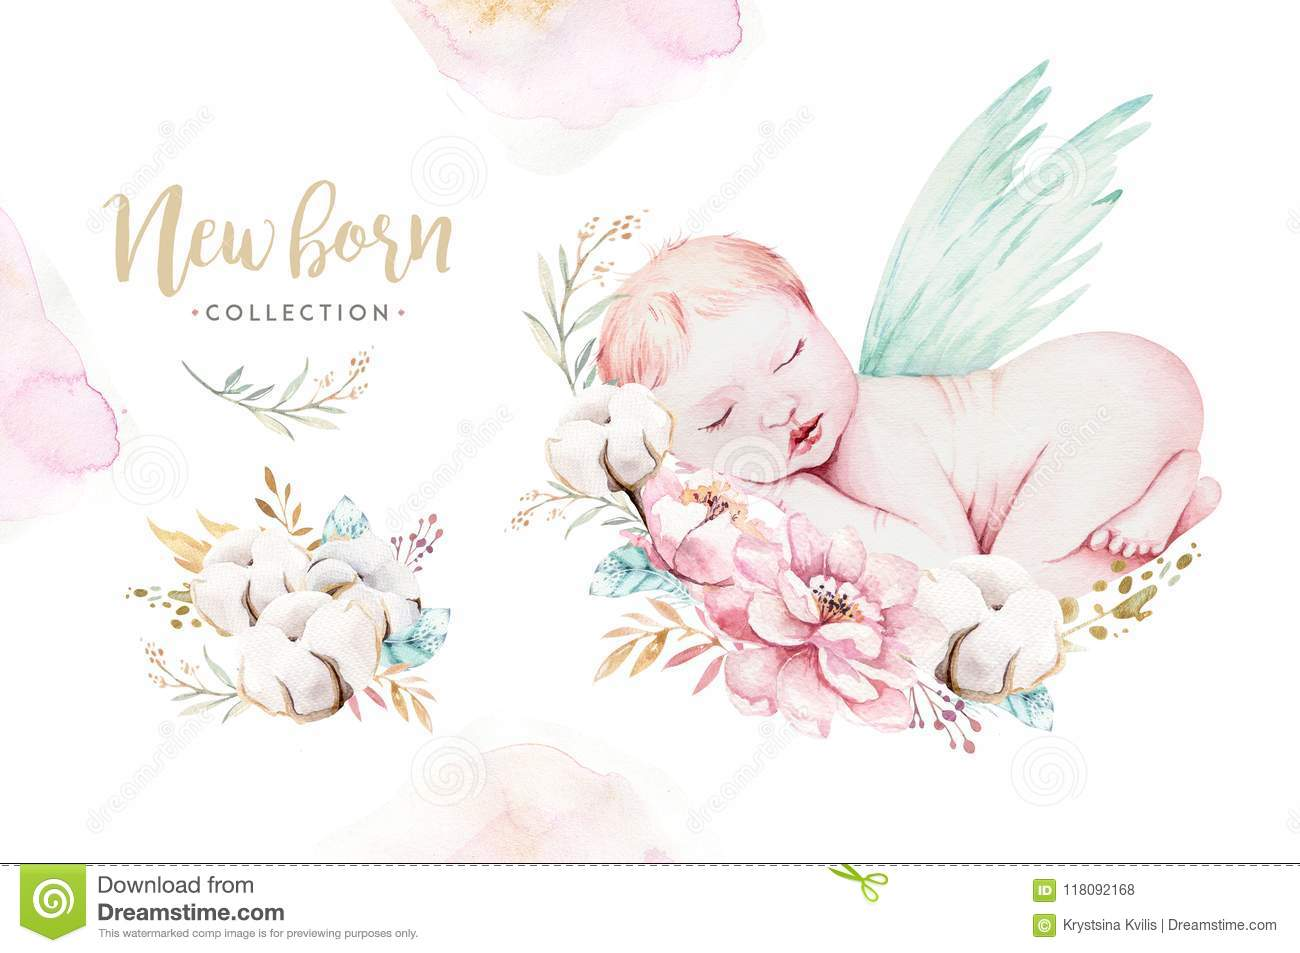 6a548151b Cute Newborn Watercolor Baby. New Born Child Illustration Girl And ...